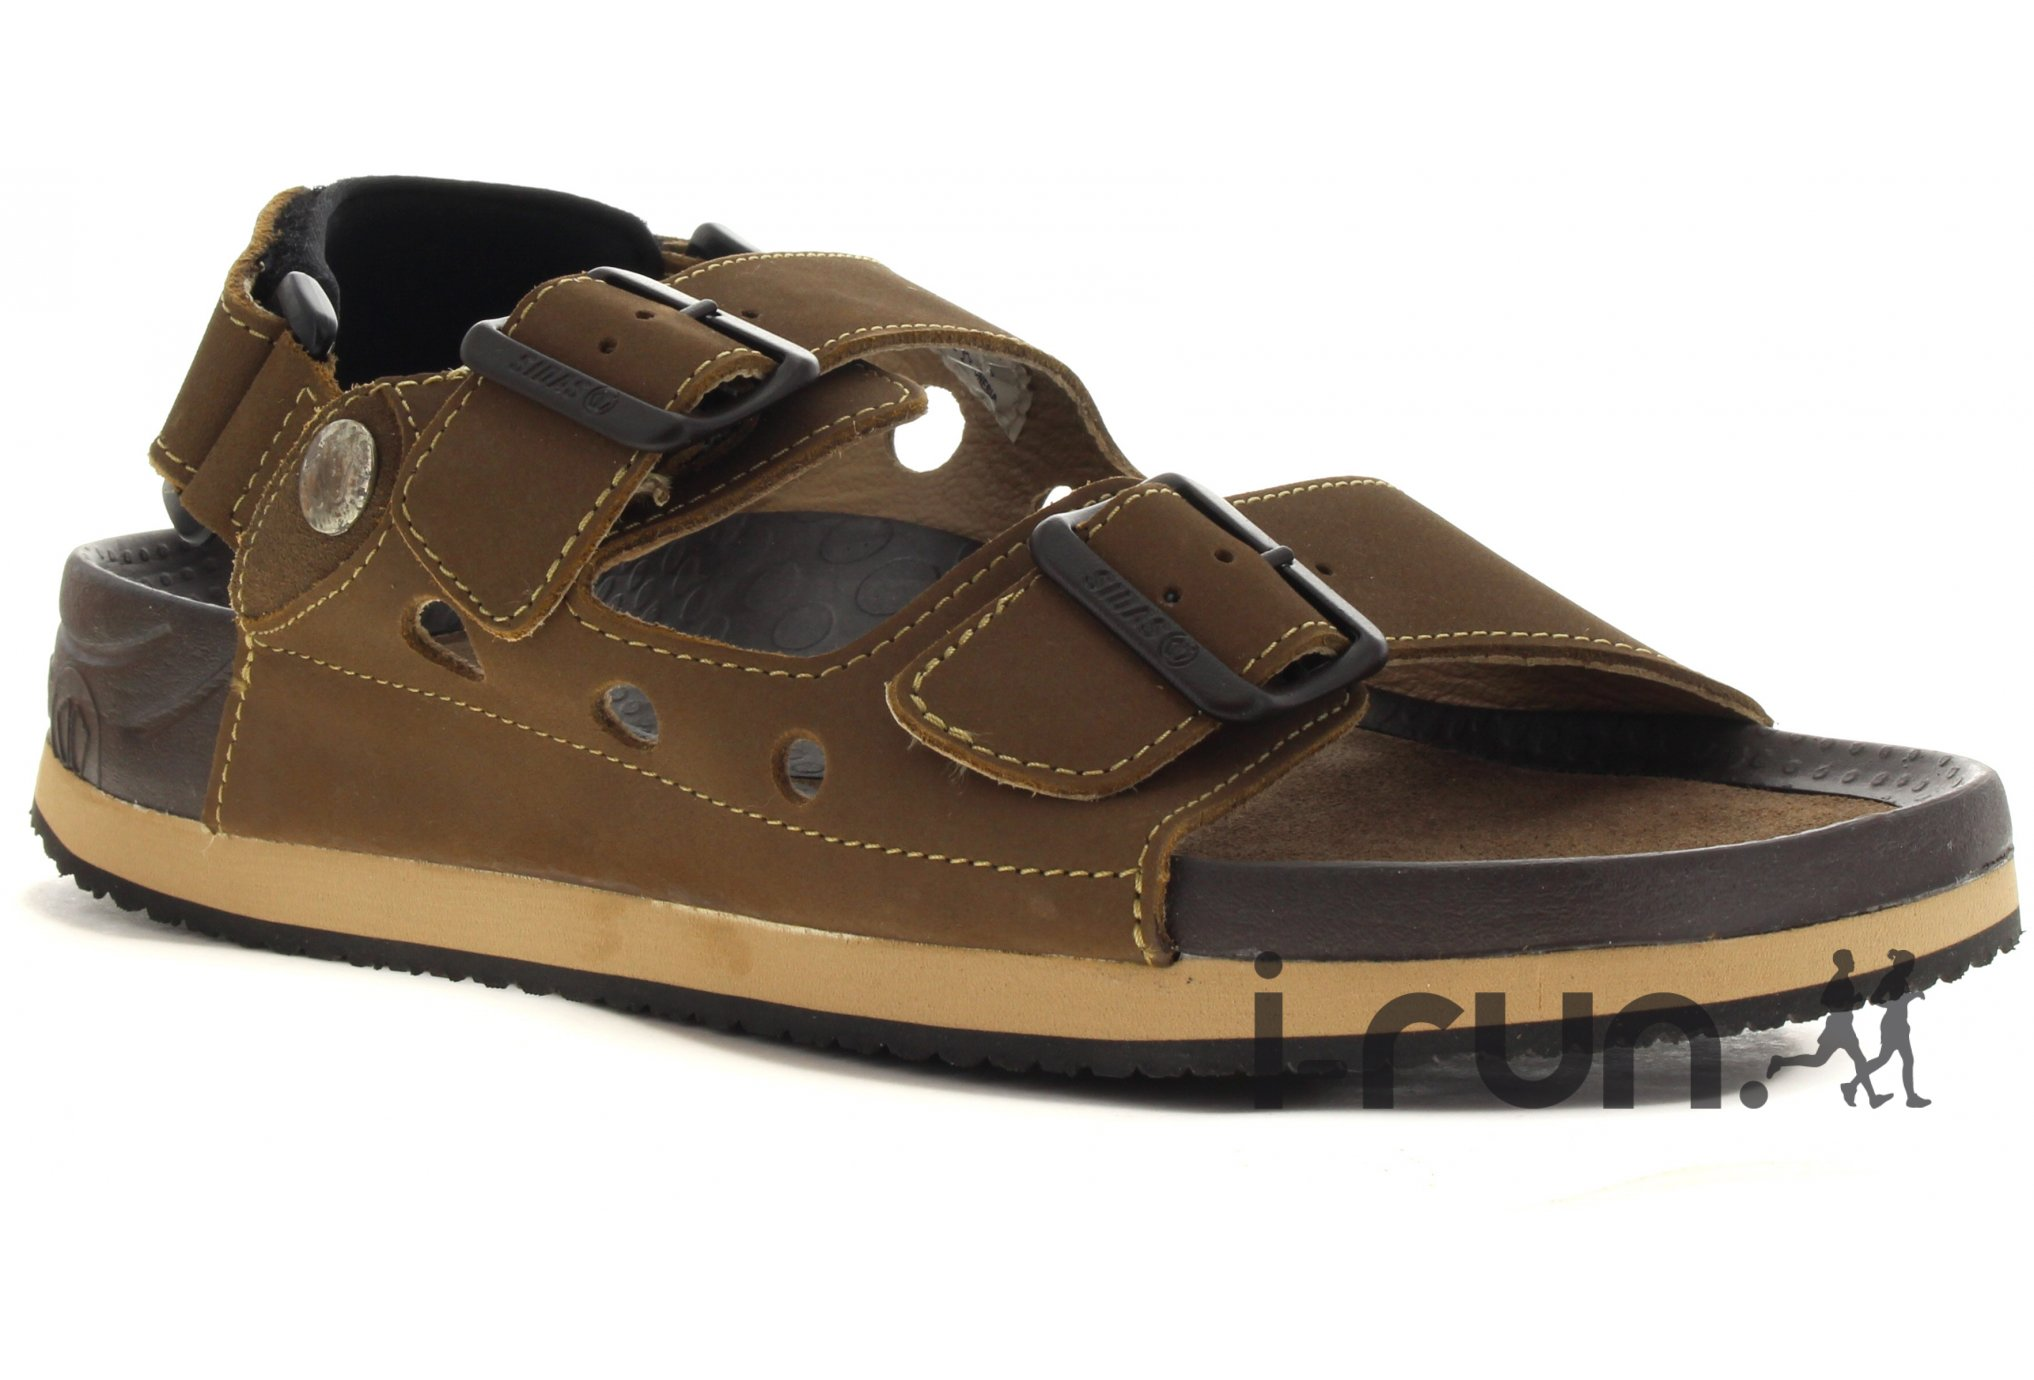 Sidas Sandales 3Feet Sunday M Chaussures homme